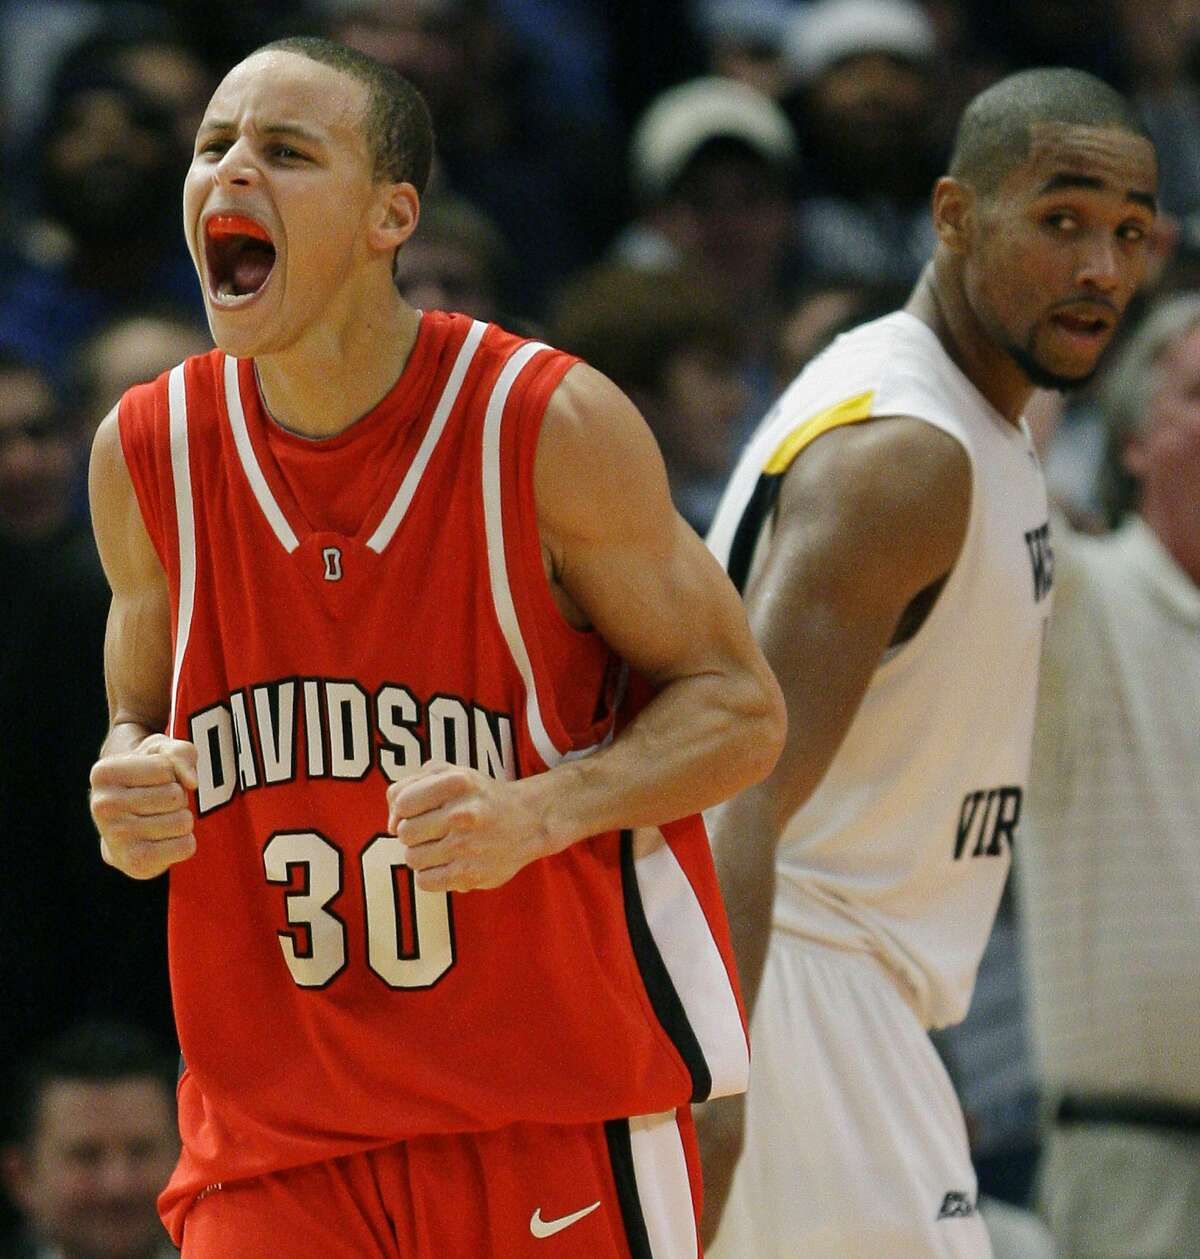 Davidson's Stephen Curry, left, reacts after a West Virginia turnover in the second half during a Jimmy V Classic NCAA college basketball game on Tuesday, Dec. 9, 2008, at Madison Square Garden in New York. Davidson won 68-65. West Virginia's Da'Sean Butler, right, looked on.(AP Photo/Julie Jacobson)